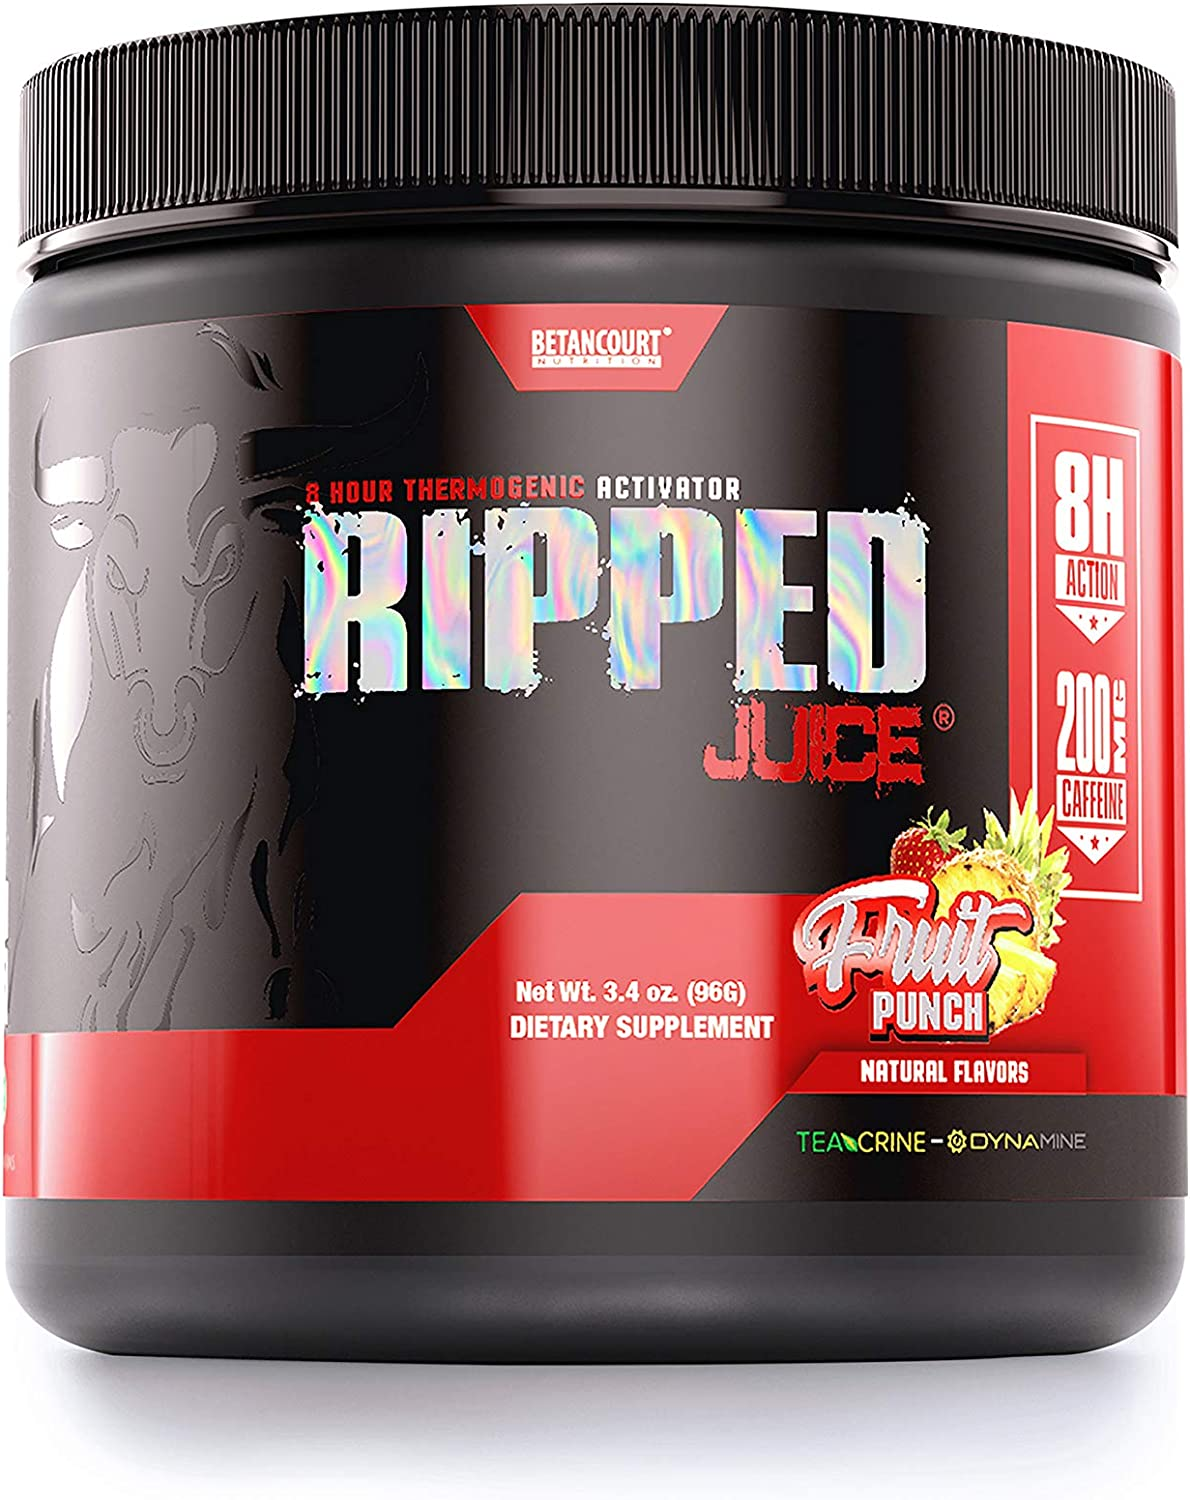 Betancourt Free shipping anywhere in the nation Time sale Nutrition Ripped Juice Powder Free Fru 3.4oz DMAA